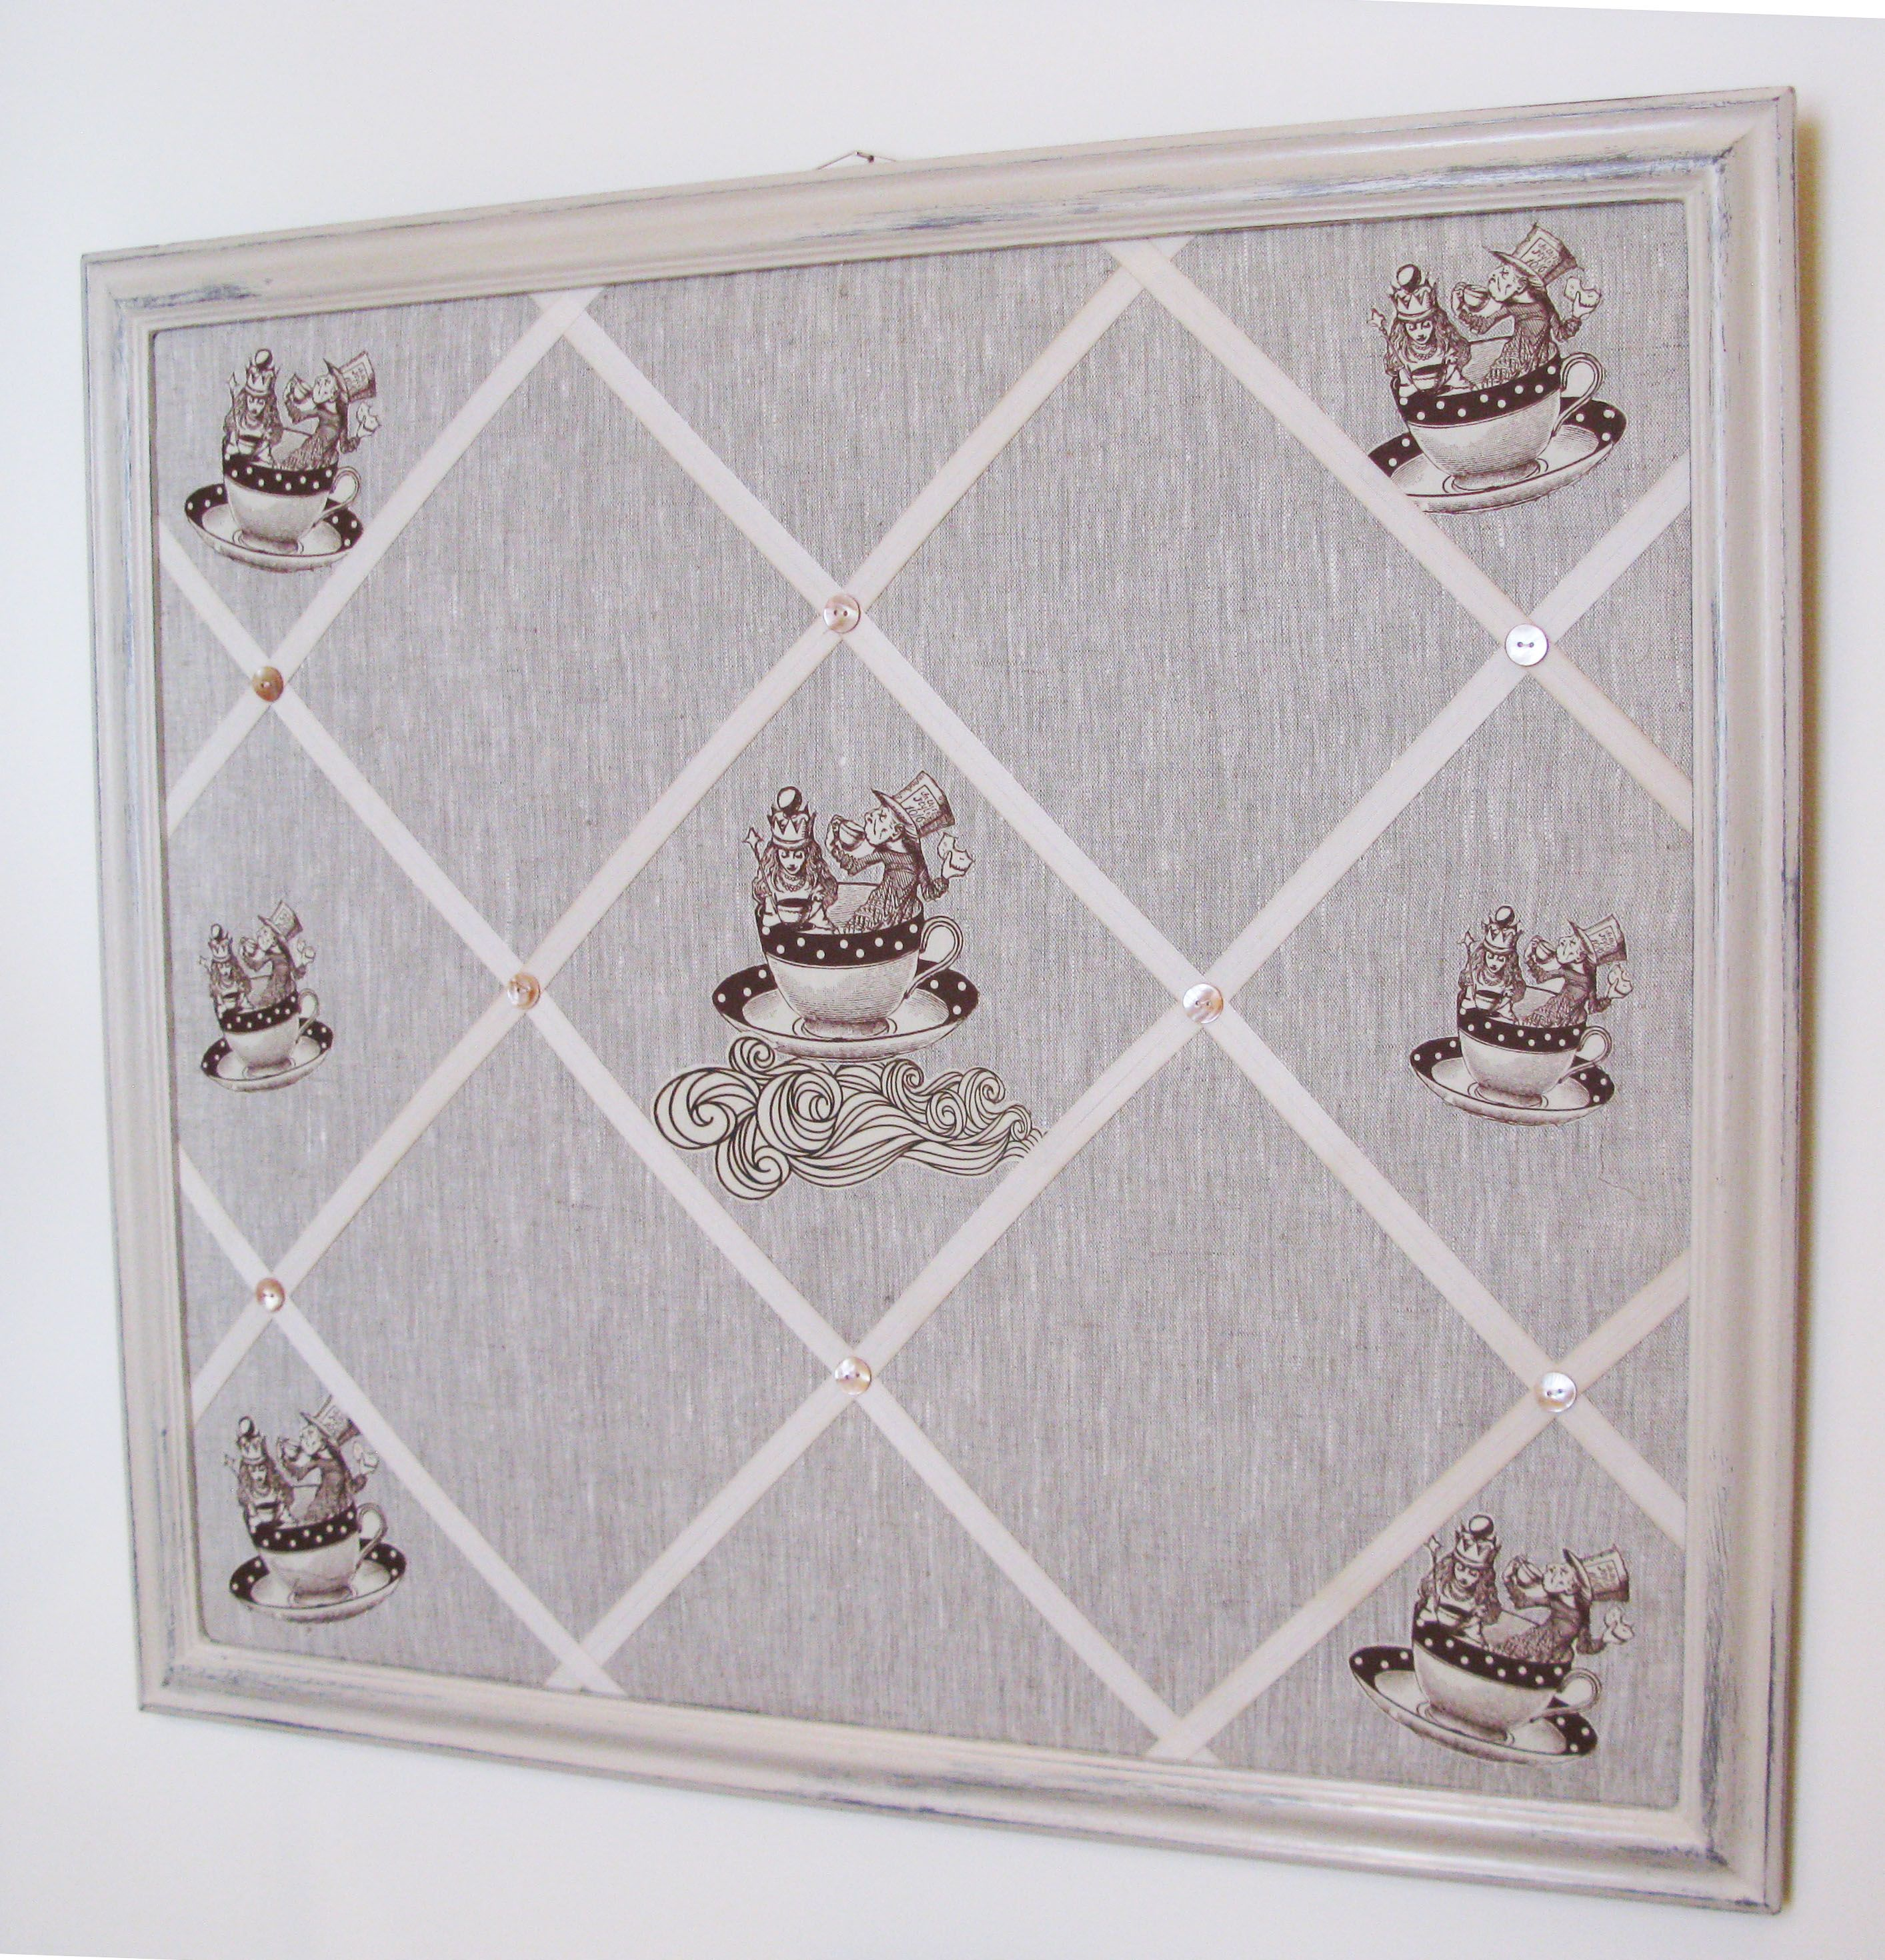 The Alice motif was appliqued on plain linen for this large bespoke ...